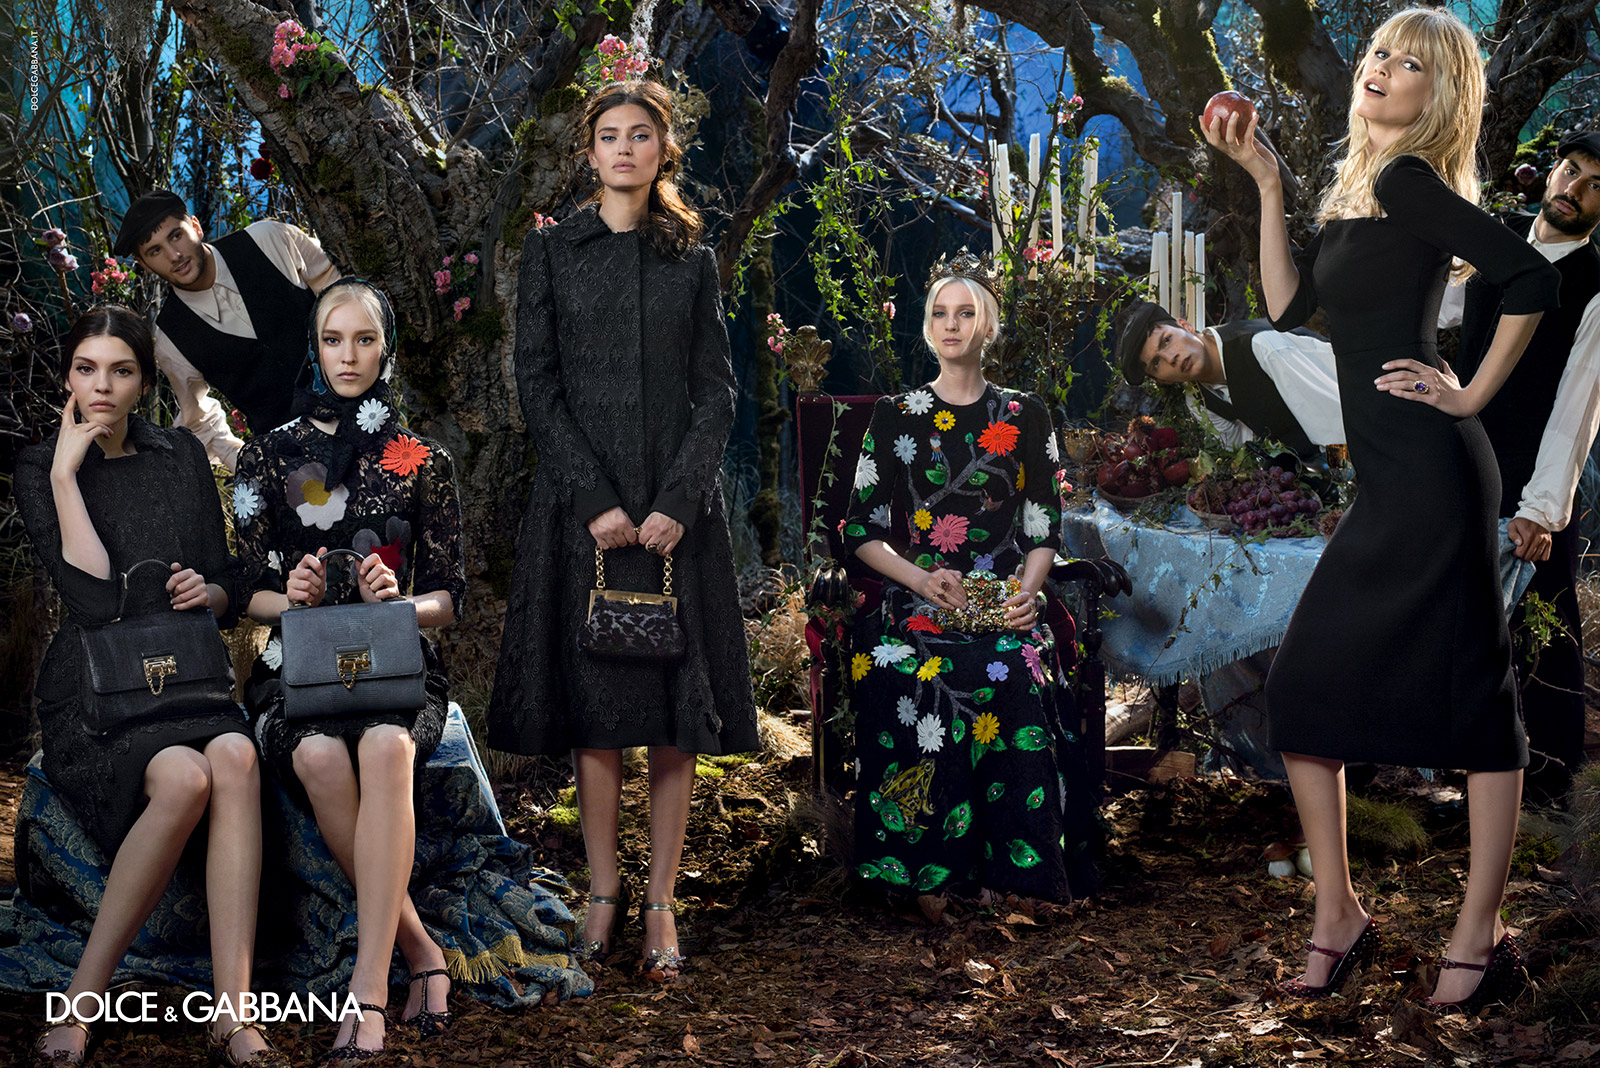 dolce-and-gabbana-winter-2015-women-advertising-campaign-04.jpg